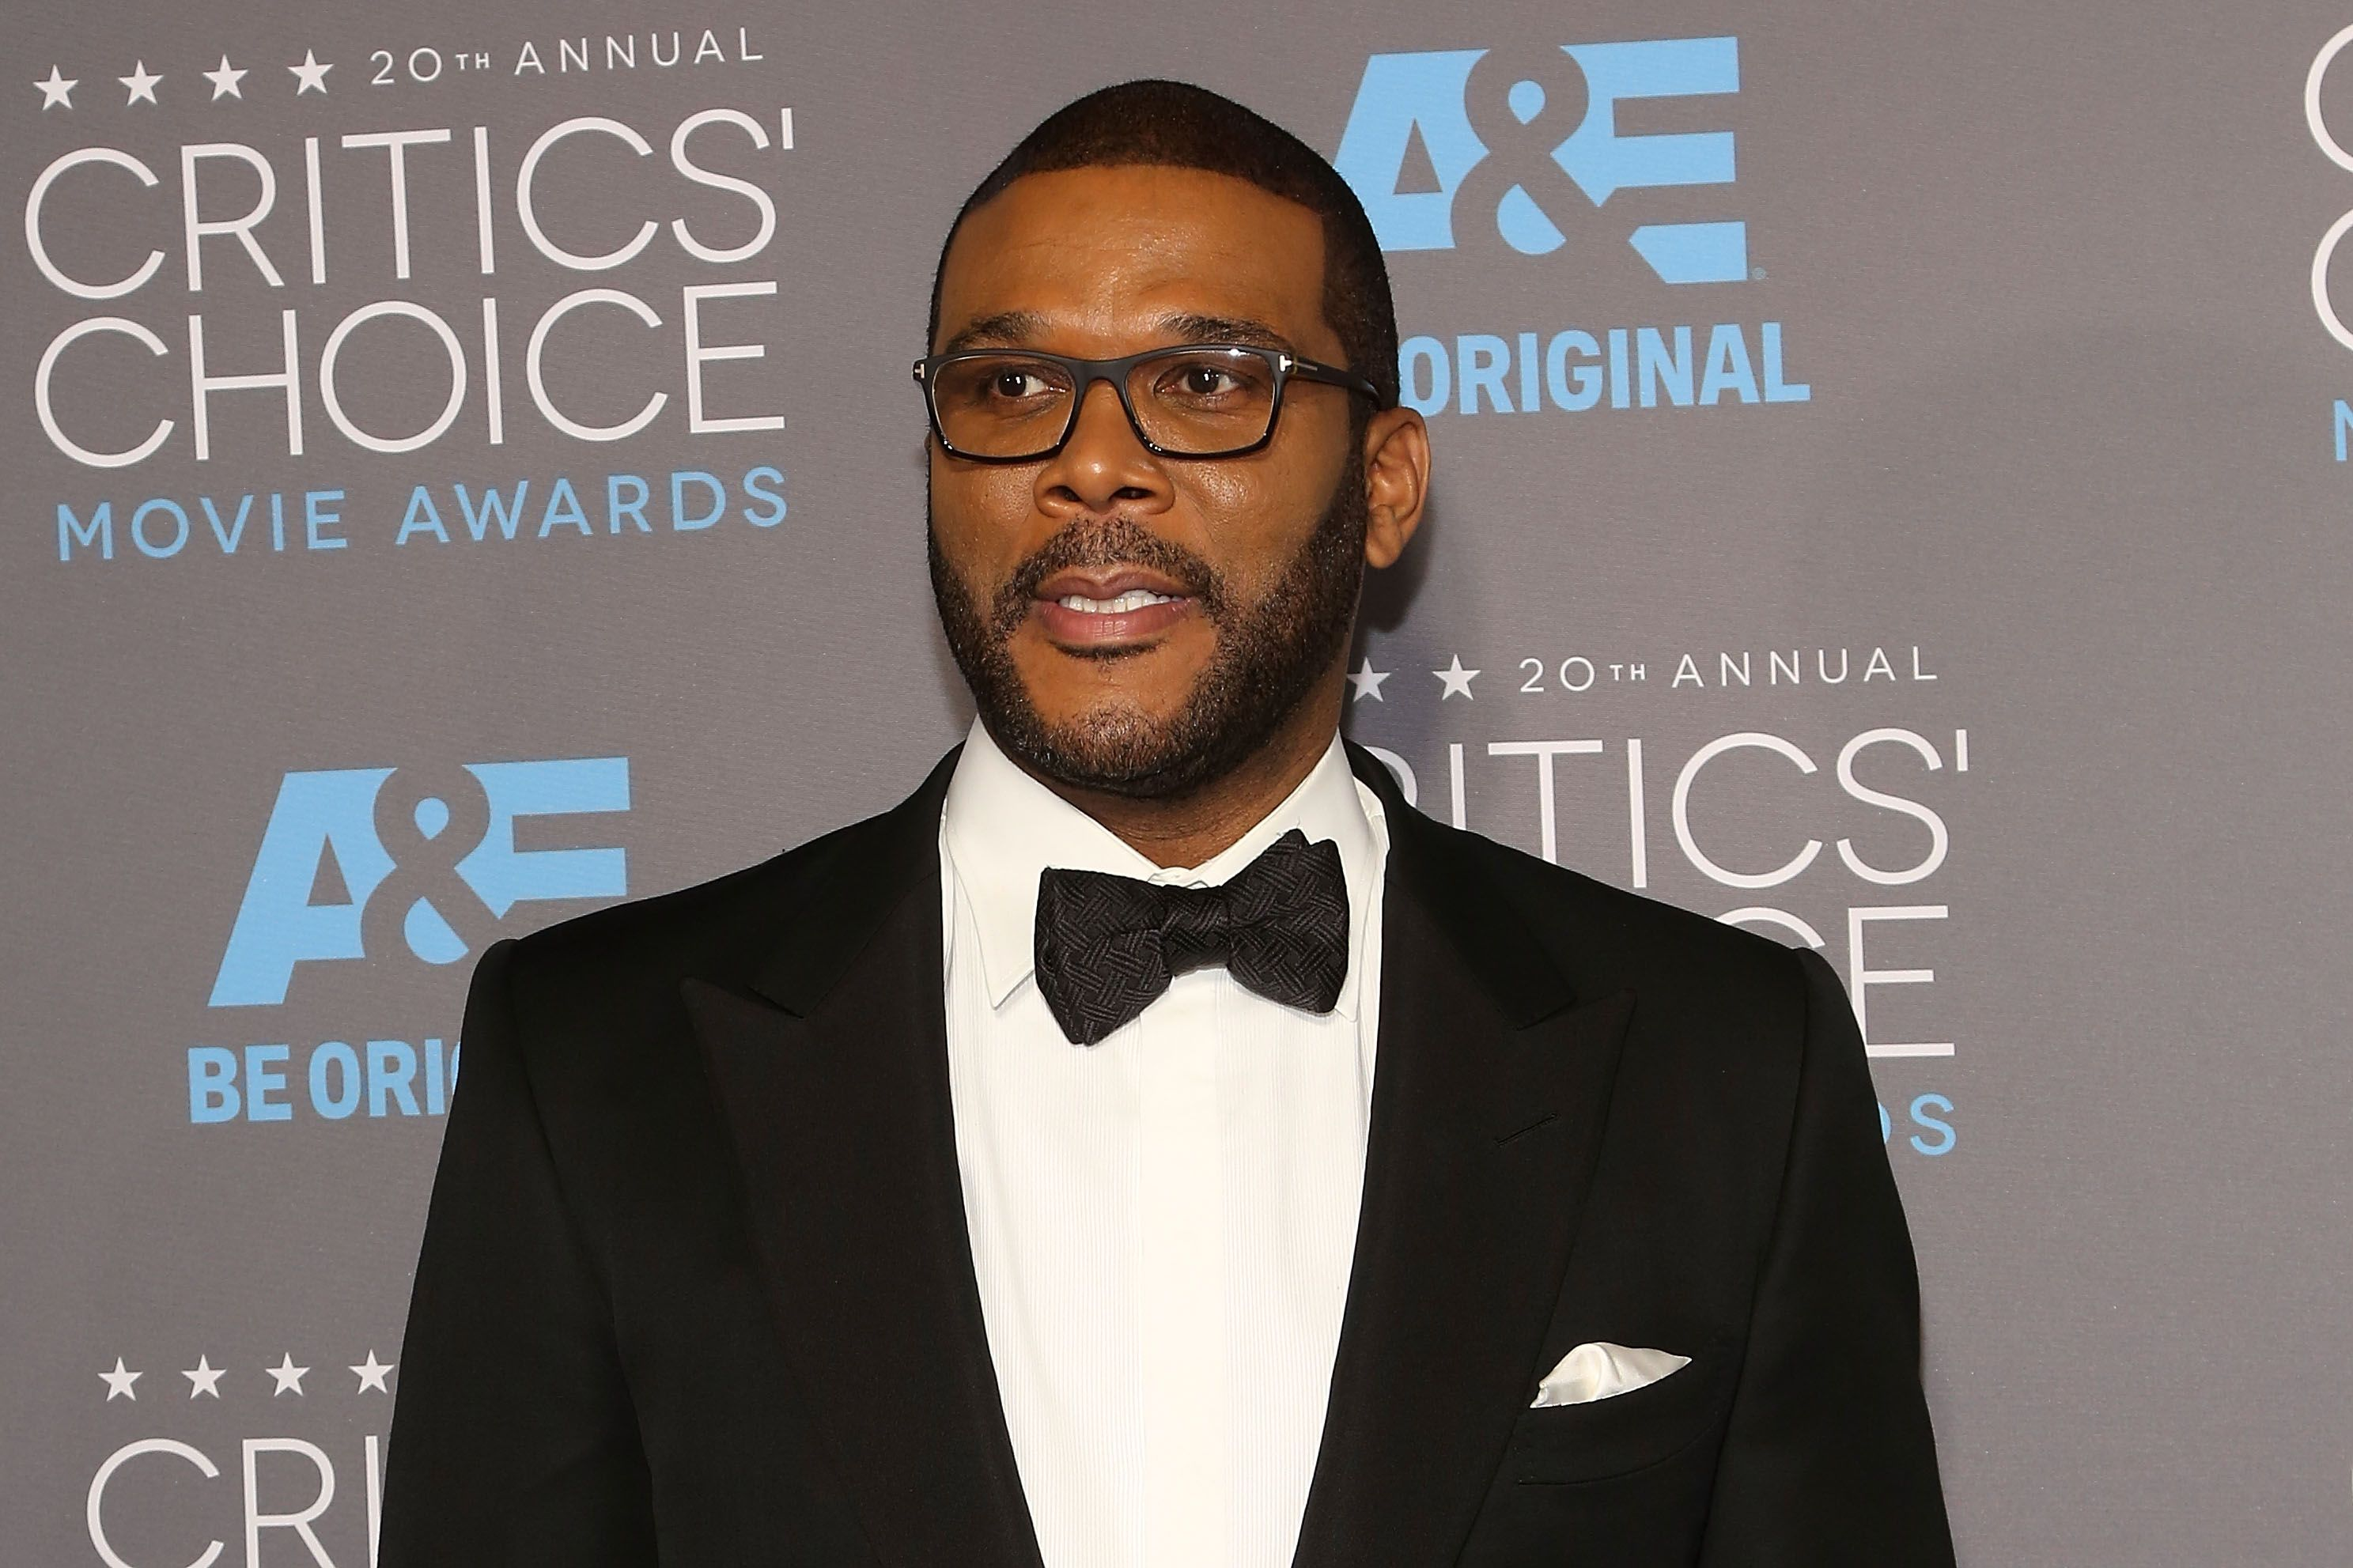 Tyler Perry during the 20th Annual Critics' Choice Movie Awards at Hollywood Palladium on January 15, 2015 in Los Angeles, California. | Source: Getty Images